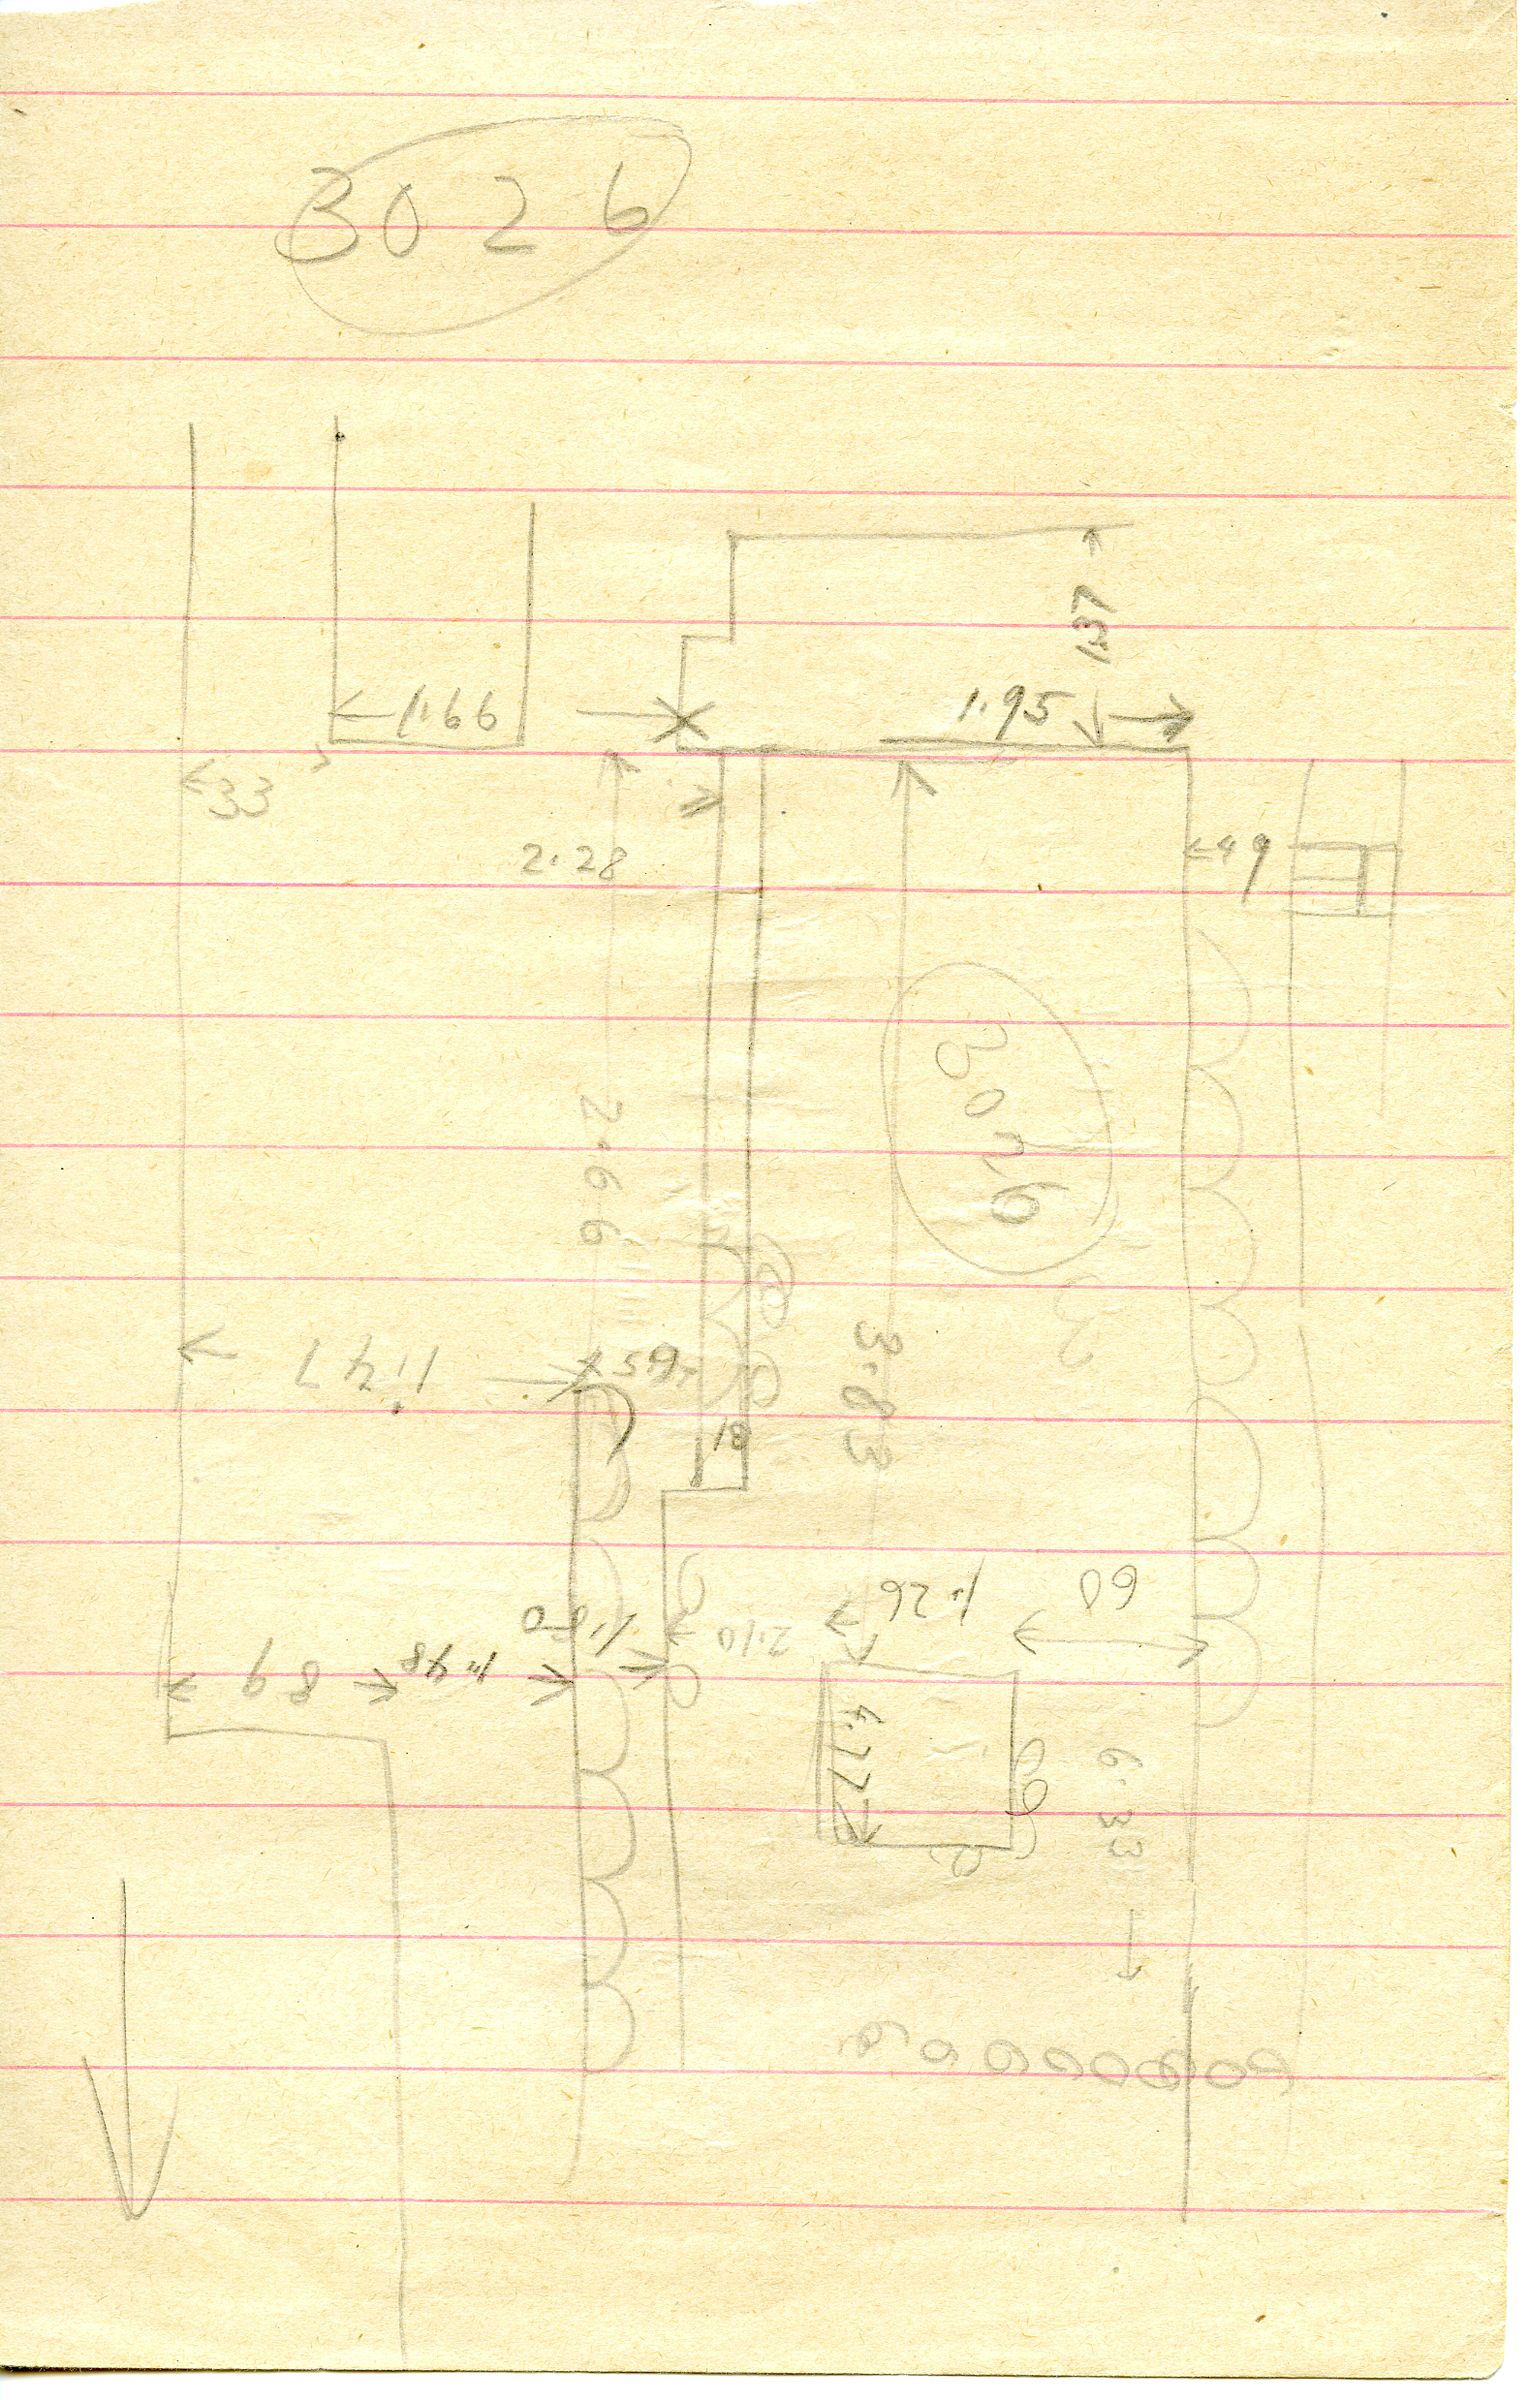 Maps and plans: G 3026, Sketch plan